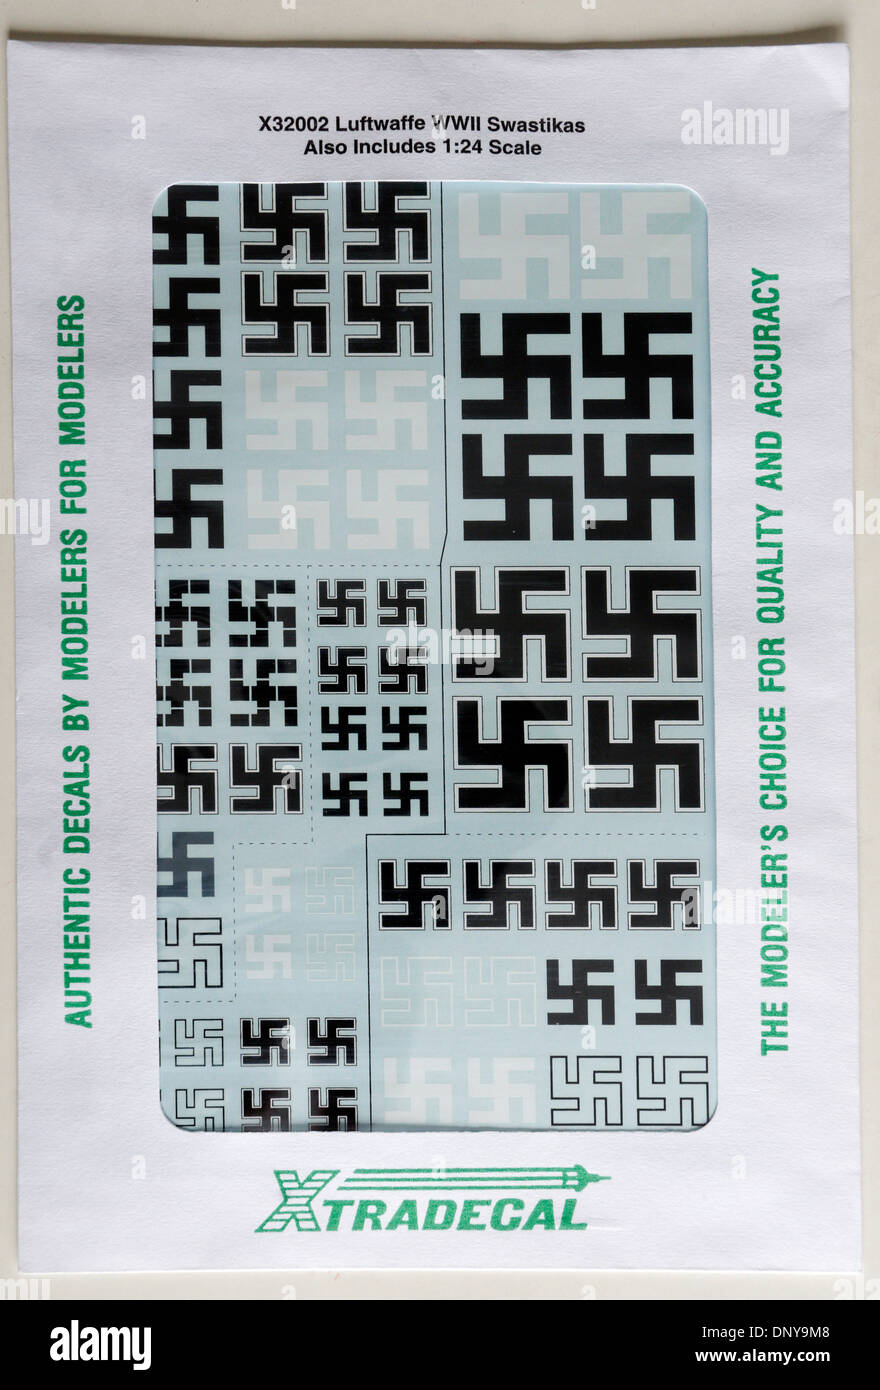 Swastika Decals for Plastic Scale Modelling. Kits of German WW2 planes are supplied without the swastika, but you can buy them. - Stock Image